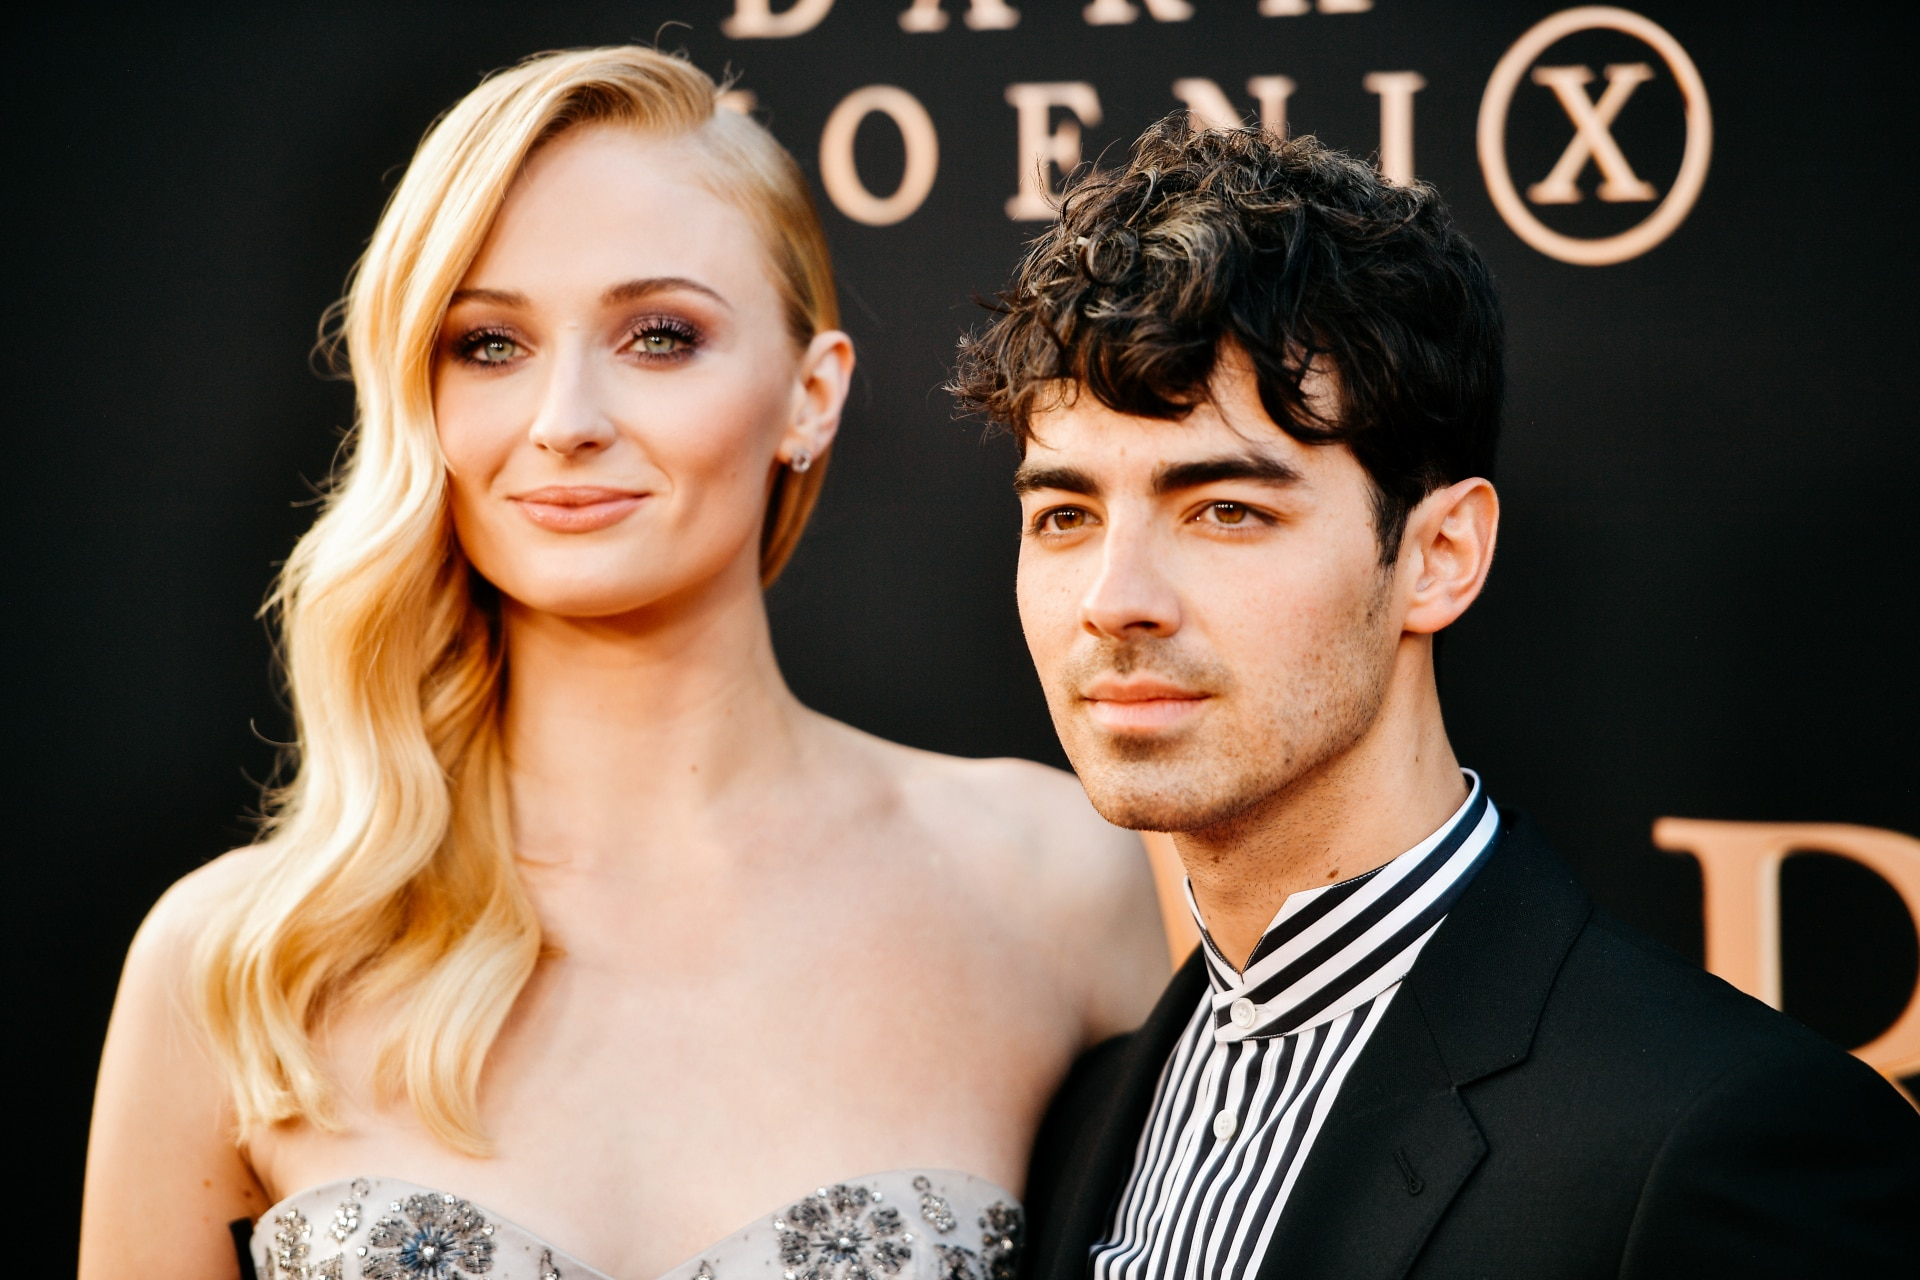 Sophie Turner goes full traditional bride to marry Joe Jonas, again